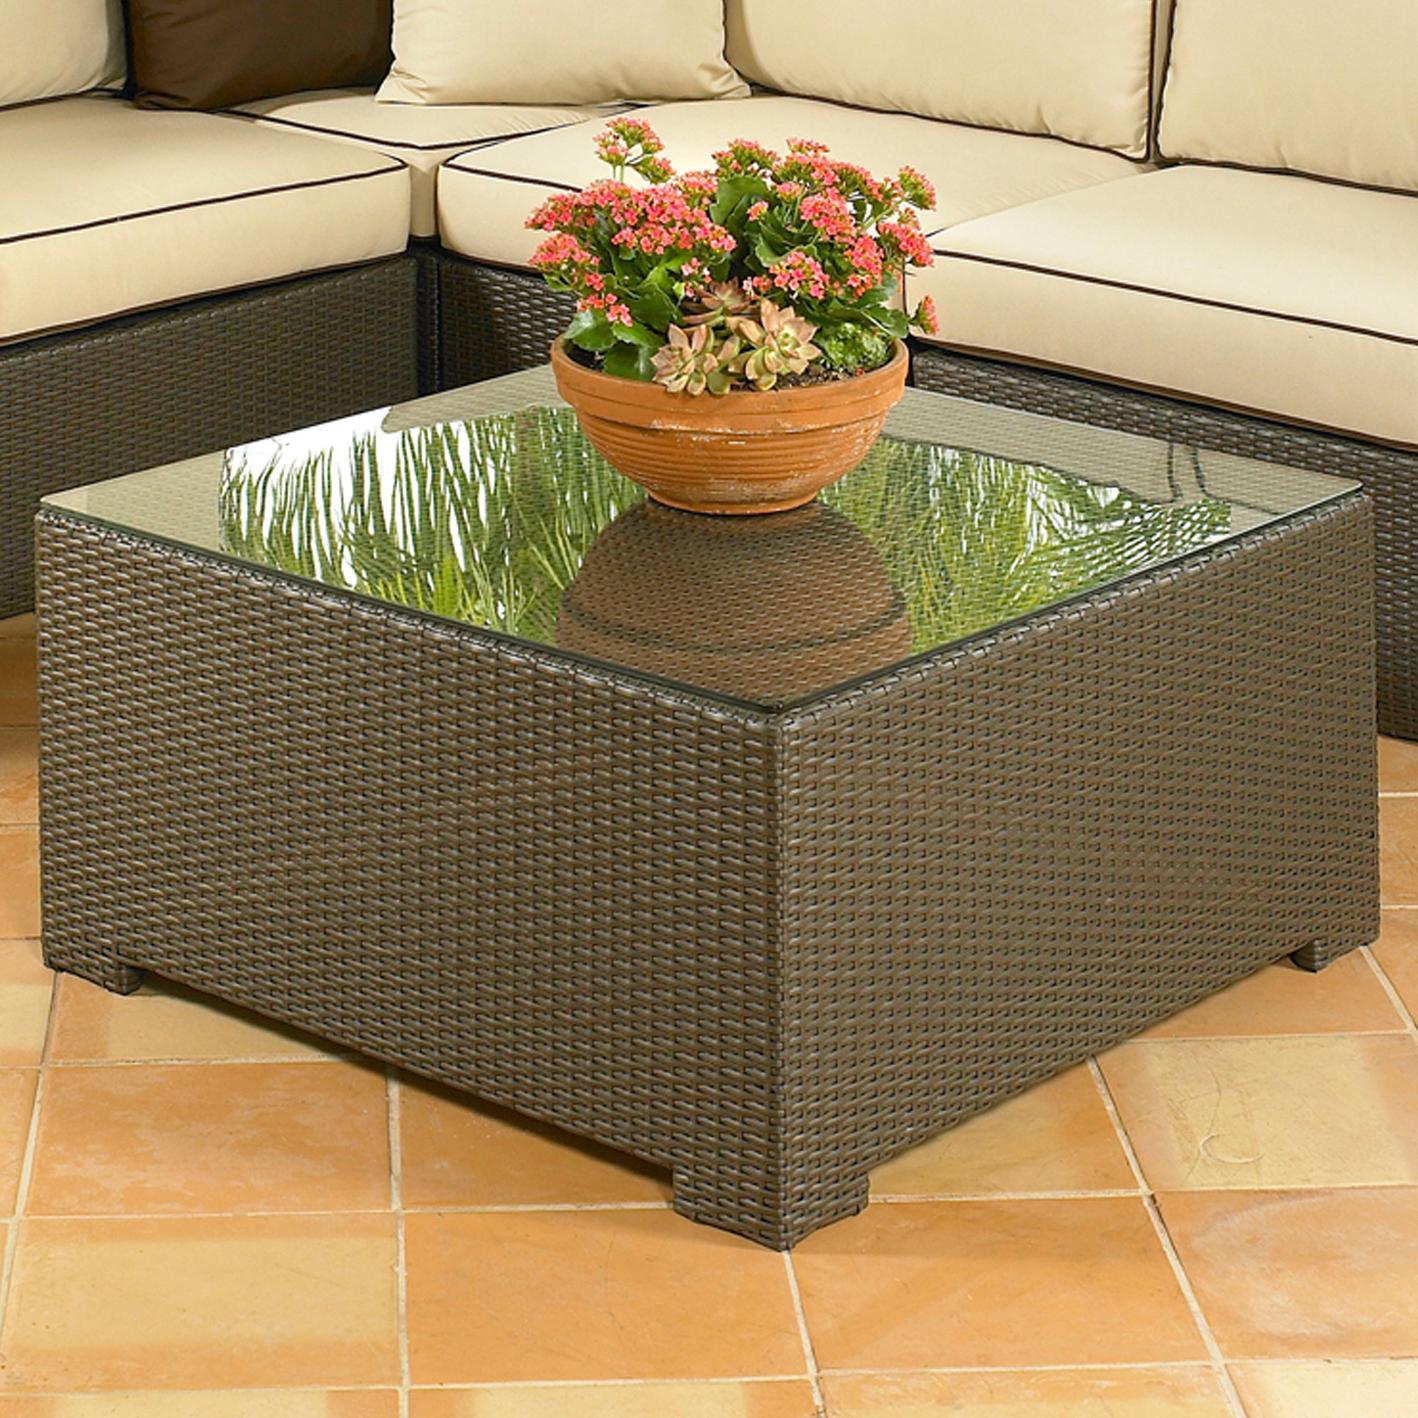 Large Square Coffee Table With Glass Top: NorthCape International Malibu NC260CT+CTGL Large Square